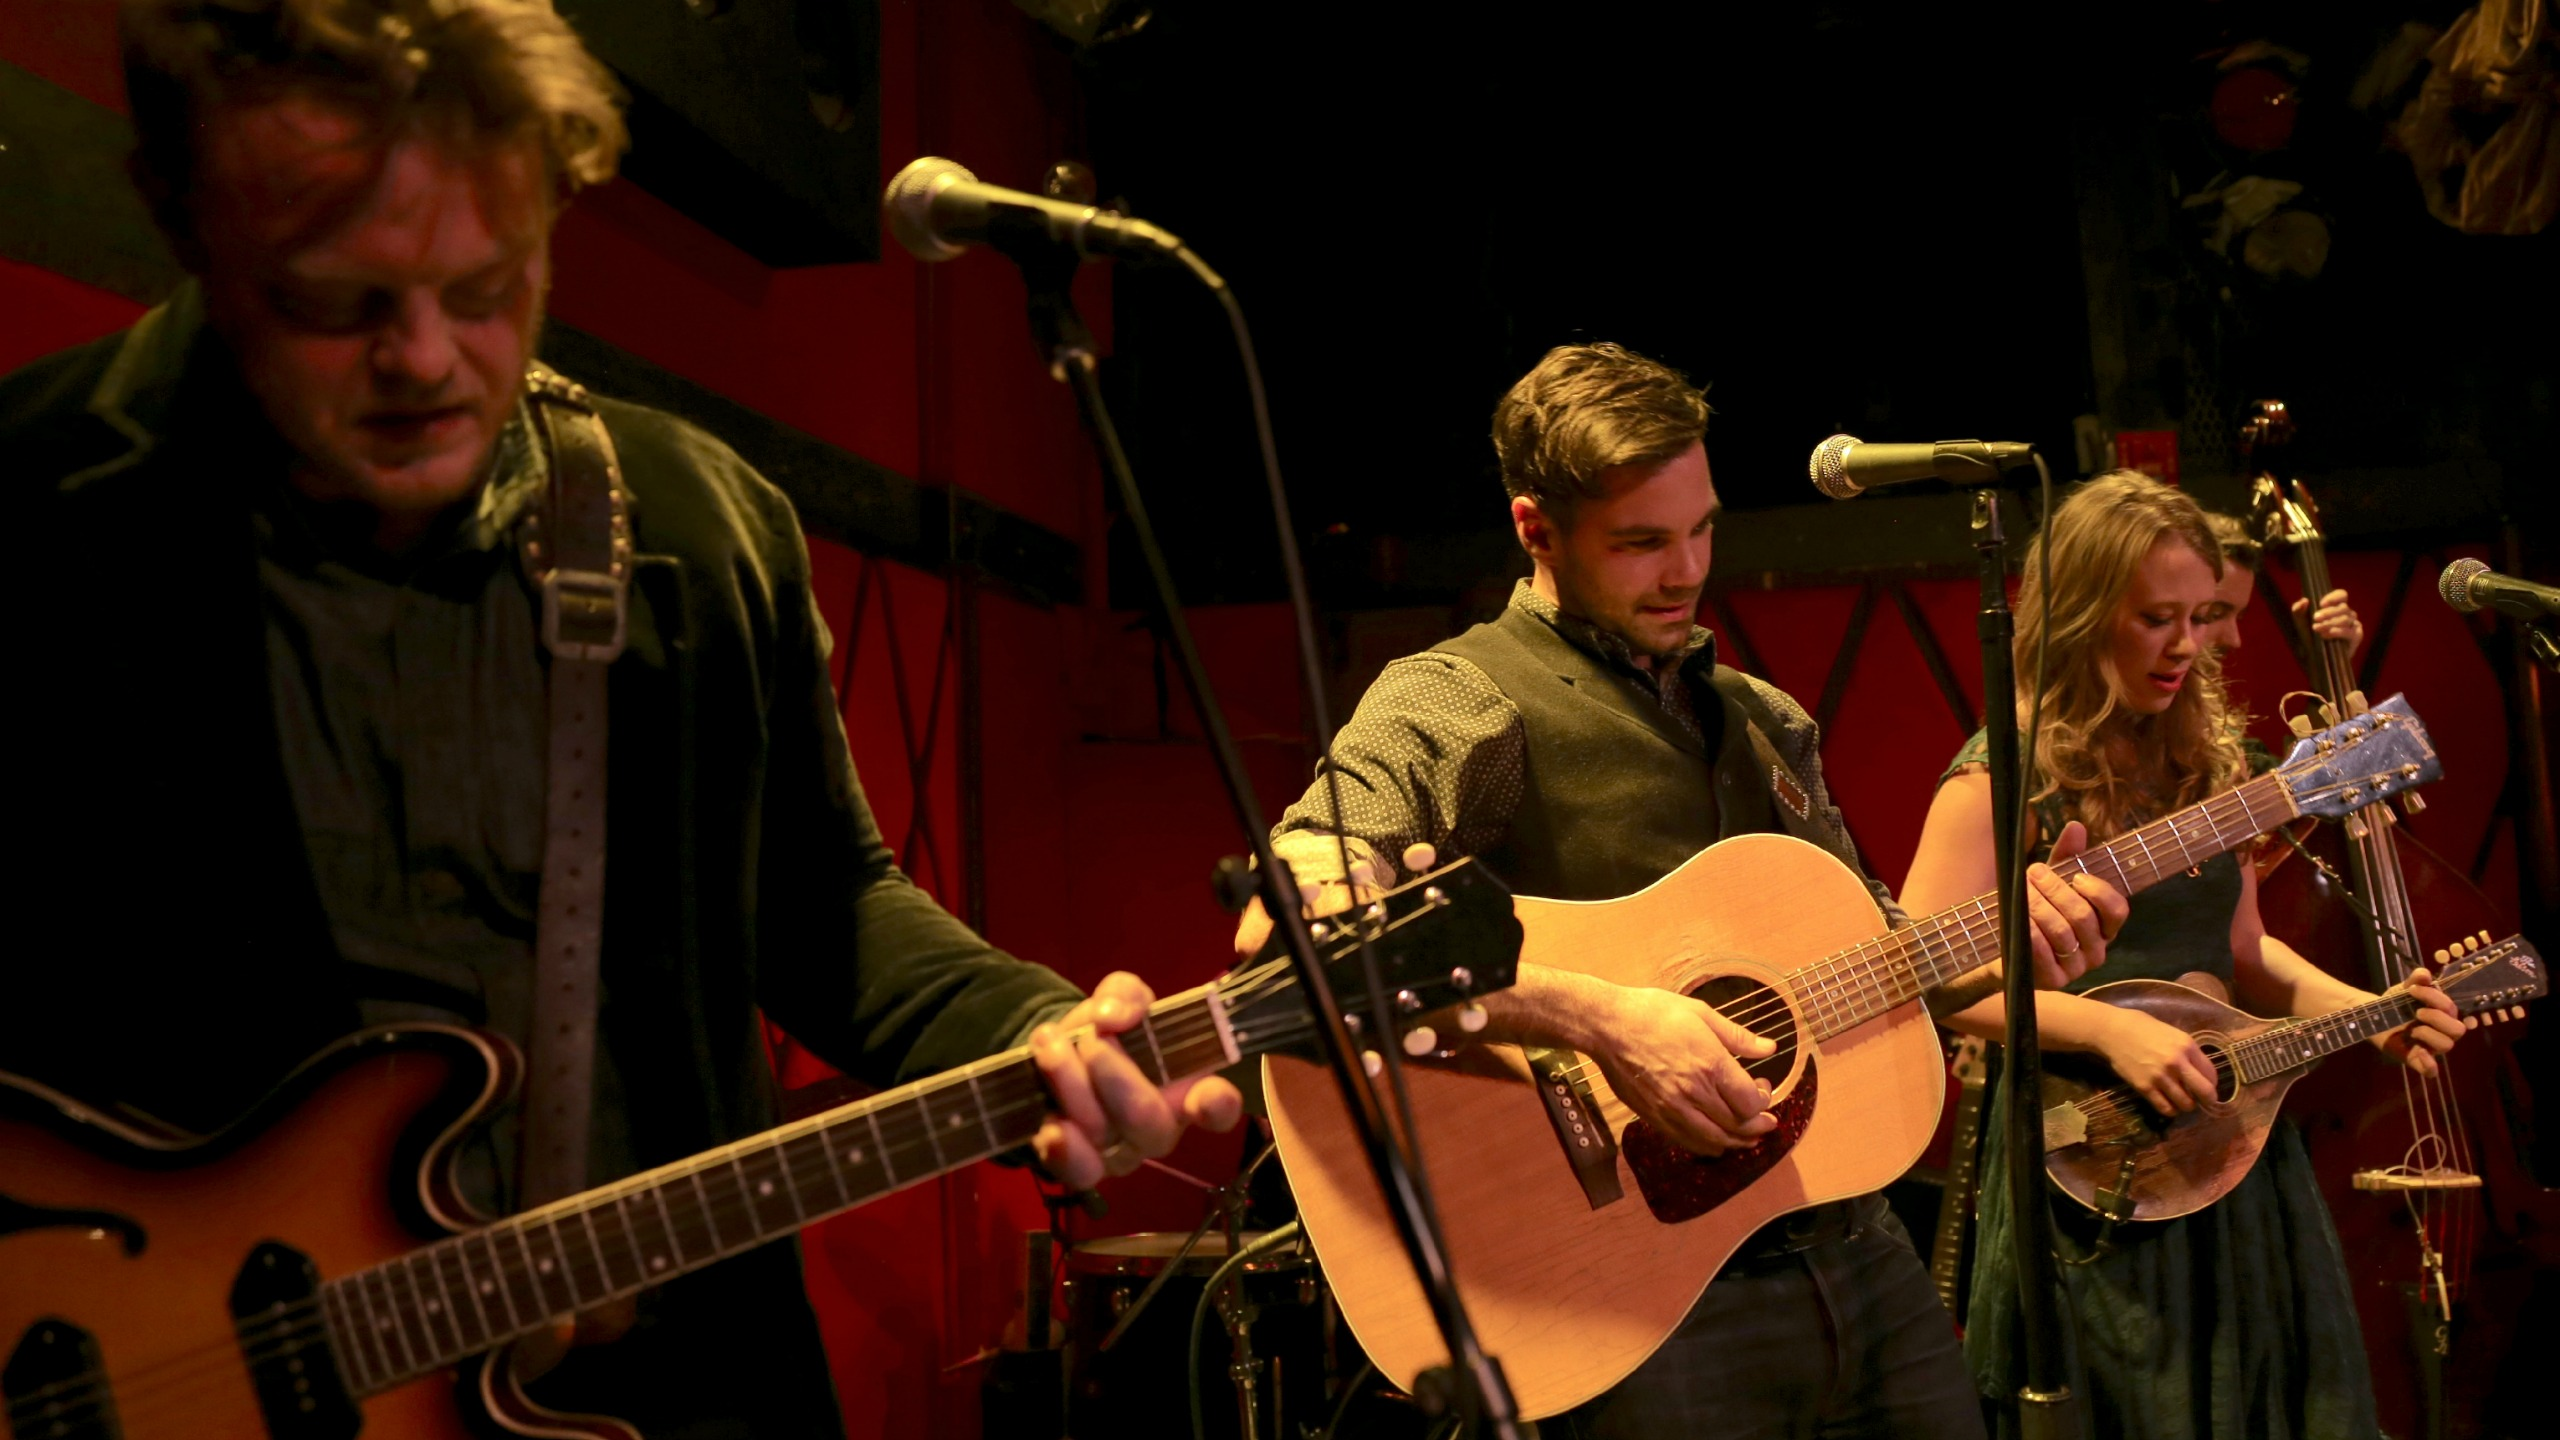 In anticipation of their shows here in NYC this week, hear a live concert with The Lone Bellow tonight at 9.